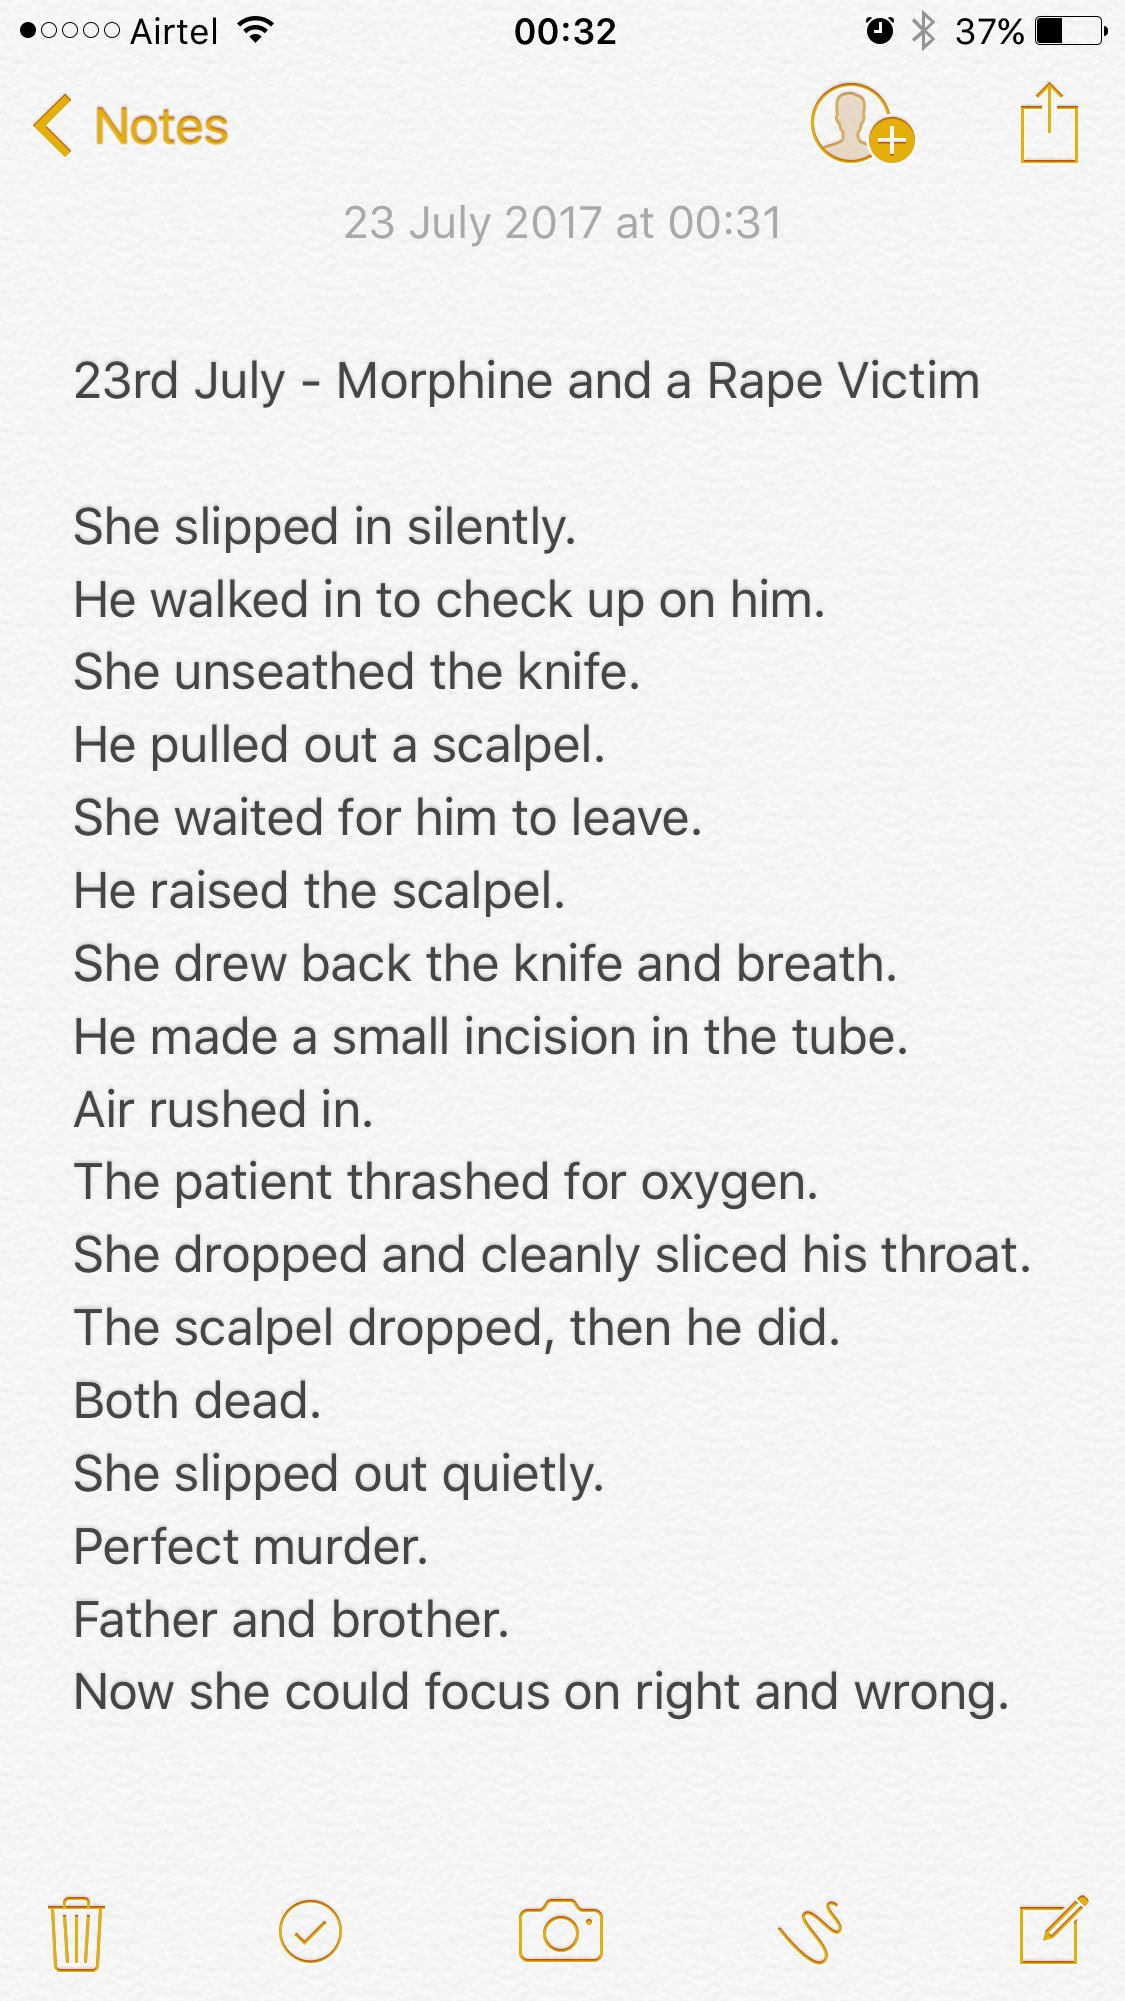 #TinyStory #Tiniature #tinystories #microstories #tinytales #amwriting #BeingAuthor https://t.co/xoDplP0vG1